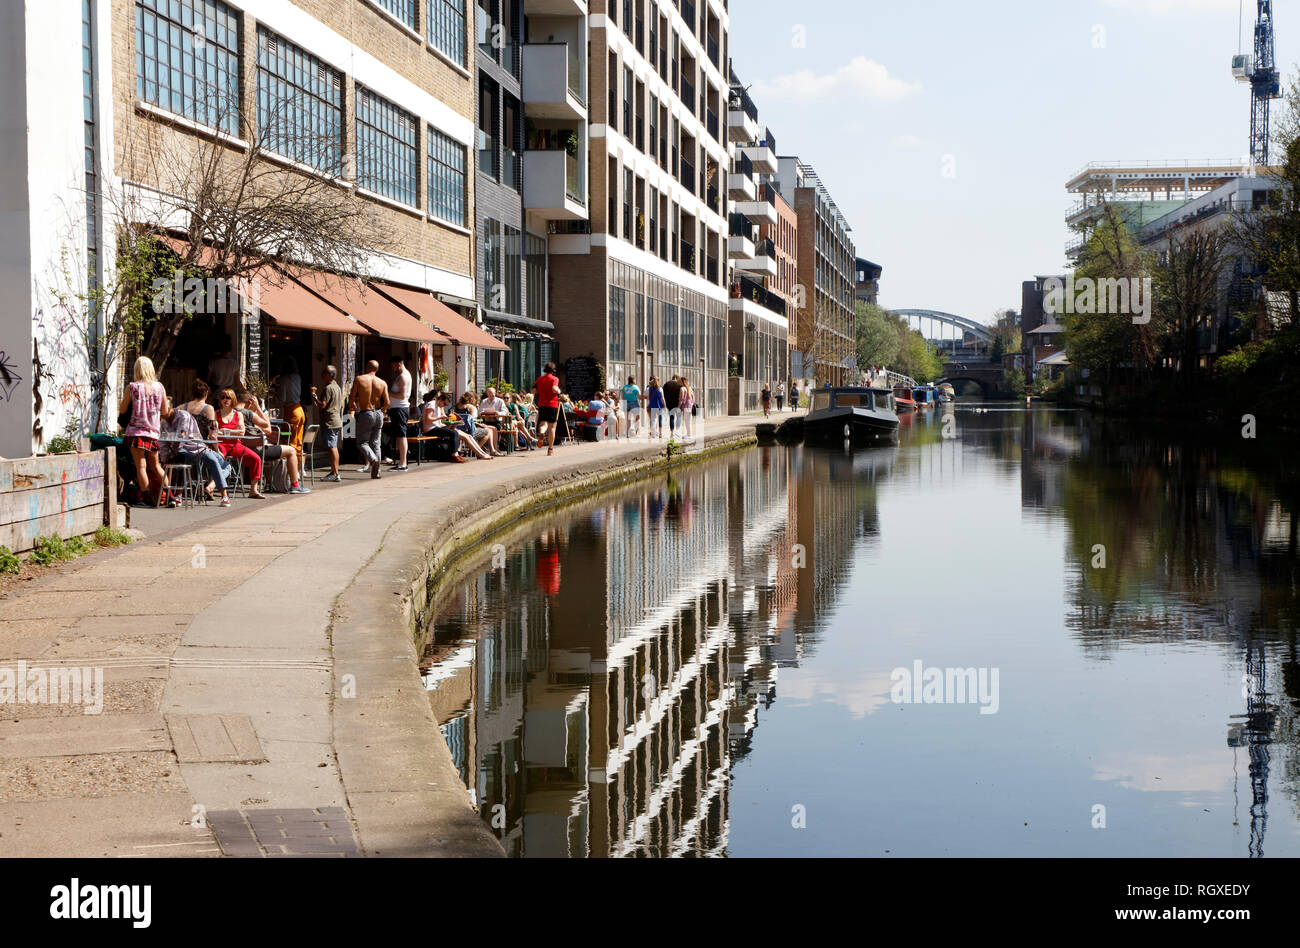 Towpath Cafe on Regent's Canal, Haggerston, London, UK - Stock Image